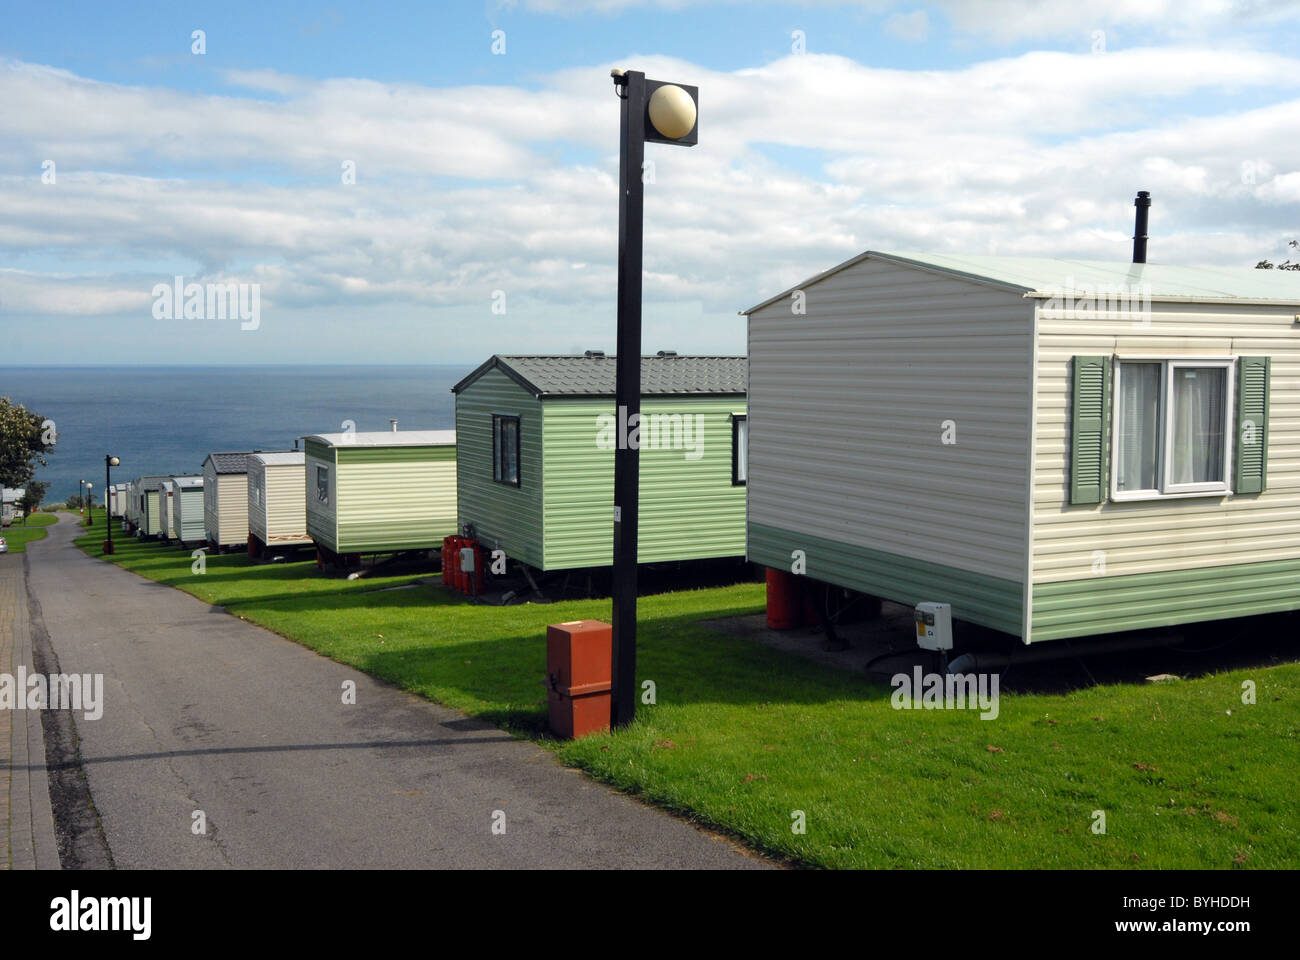 A Trailer Park Near The Sea In England UK